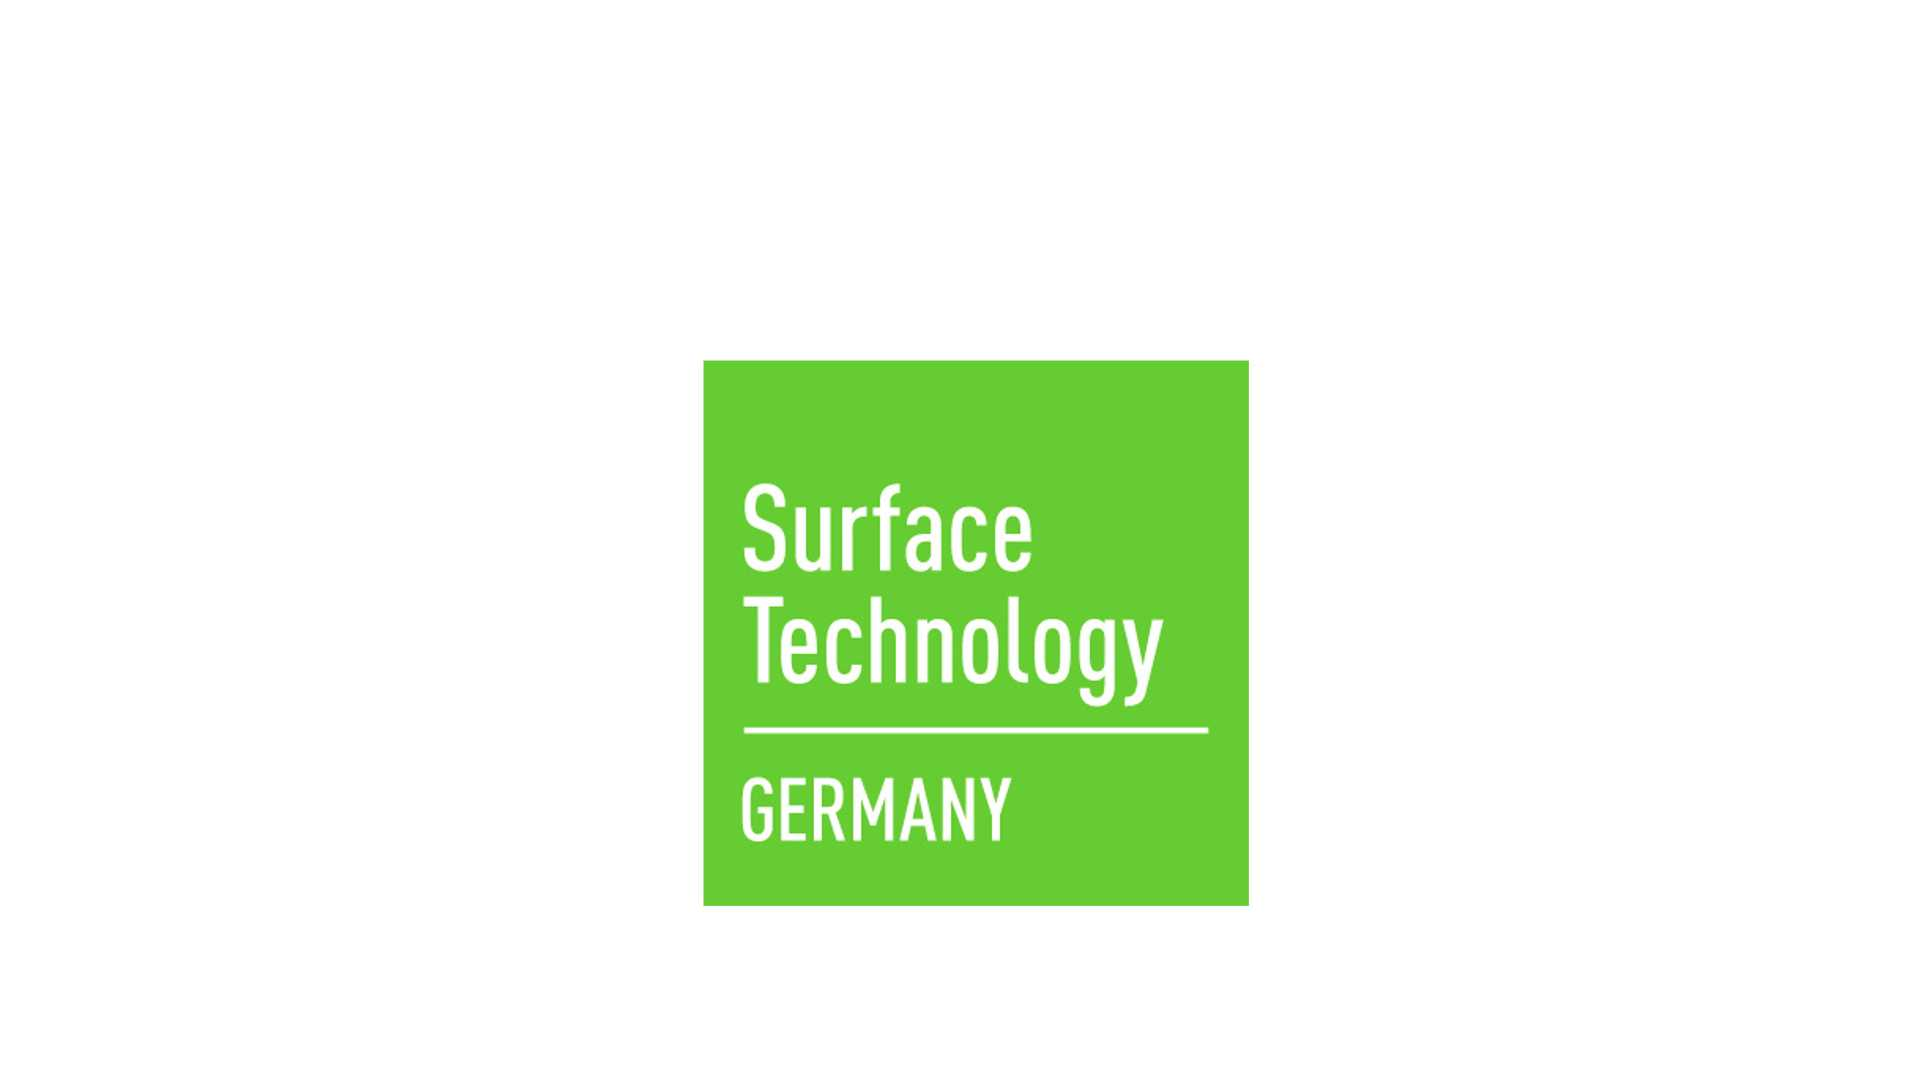 Surface Technology Germany 2020